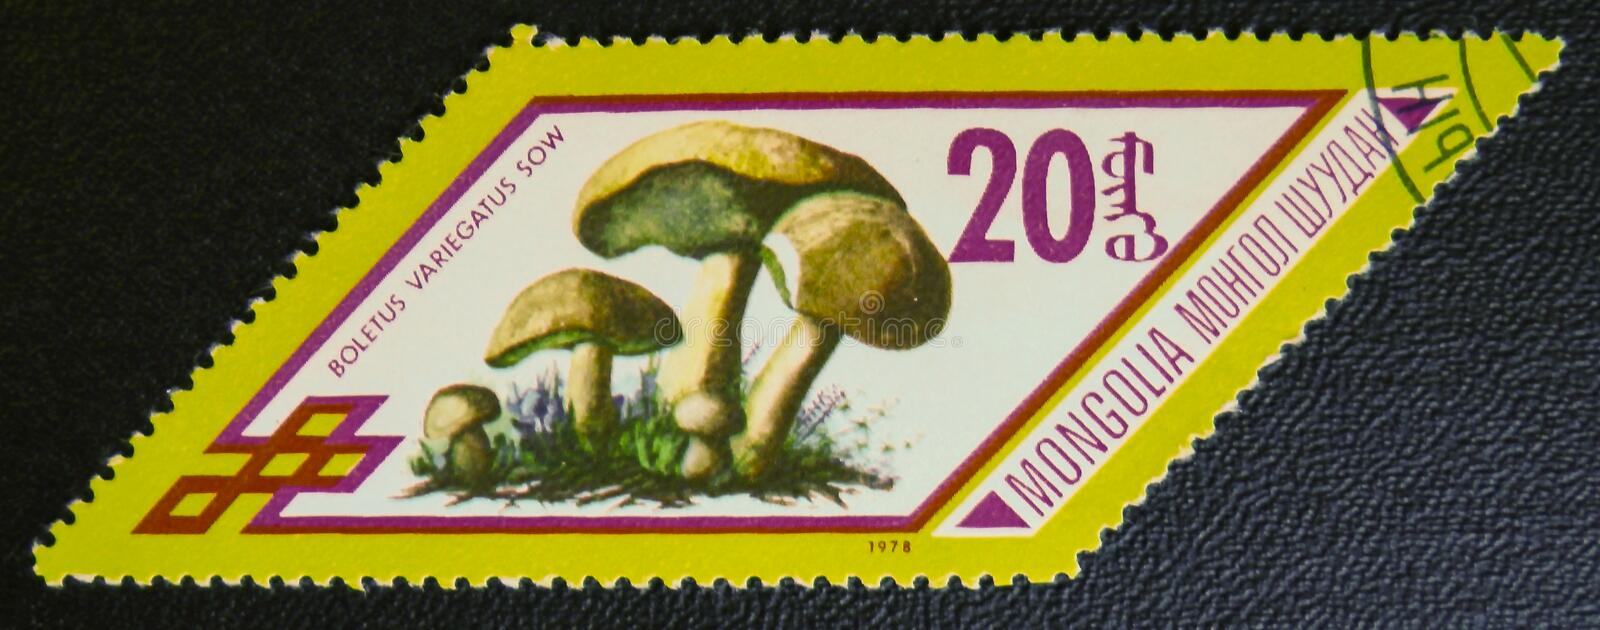 Boletus variegatus sow, circa 1978. MOSCOW, RUSSIA - JANUARY 7, 2017: A stamp printed in Mongolia shows Boletus variegatus sow mushrooms, series, circa 1978 royalty free stock photography